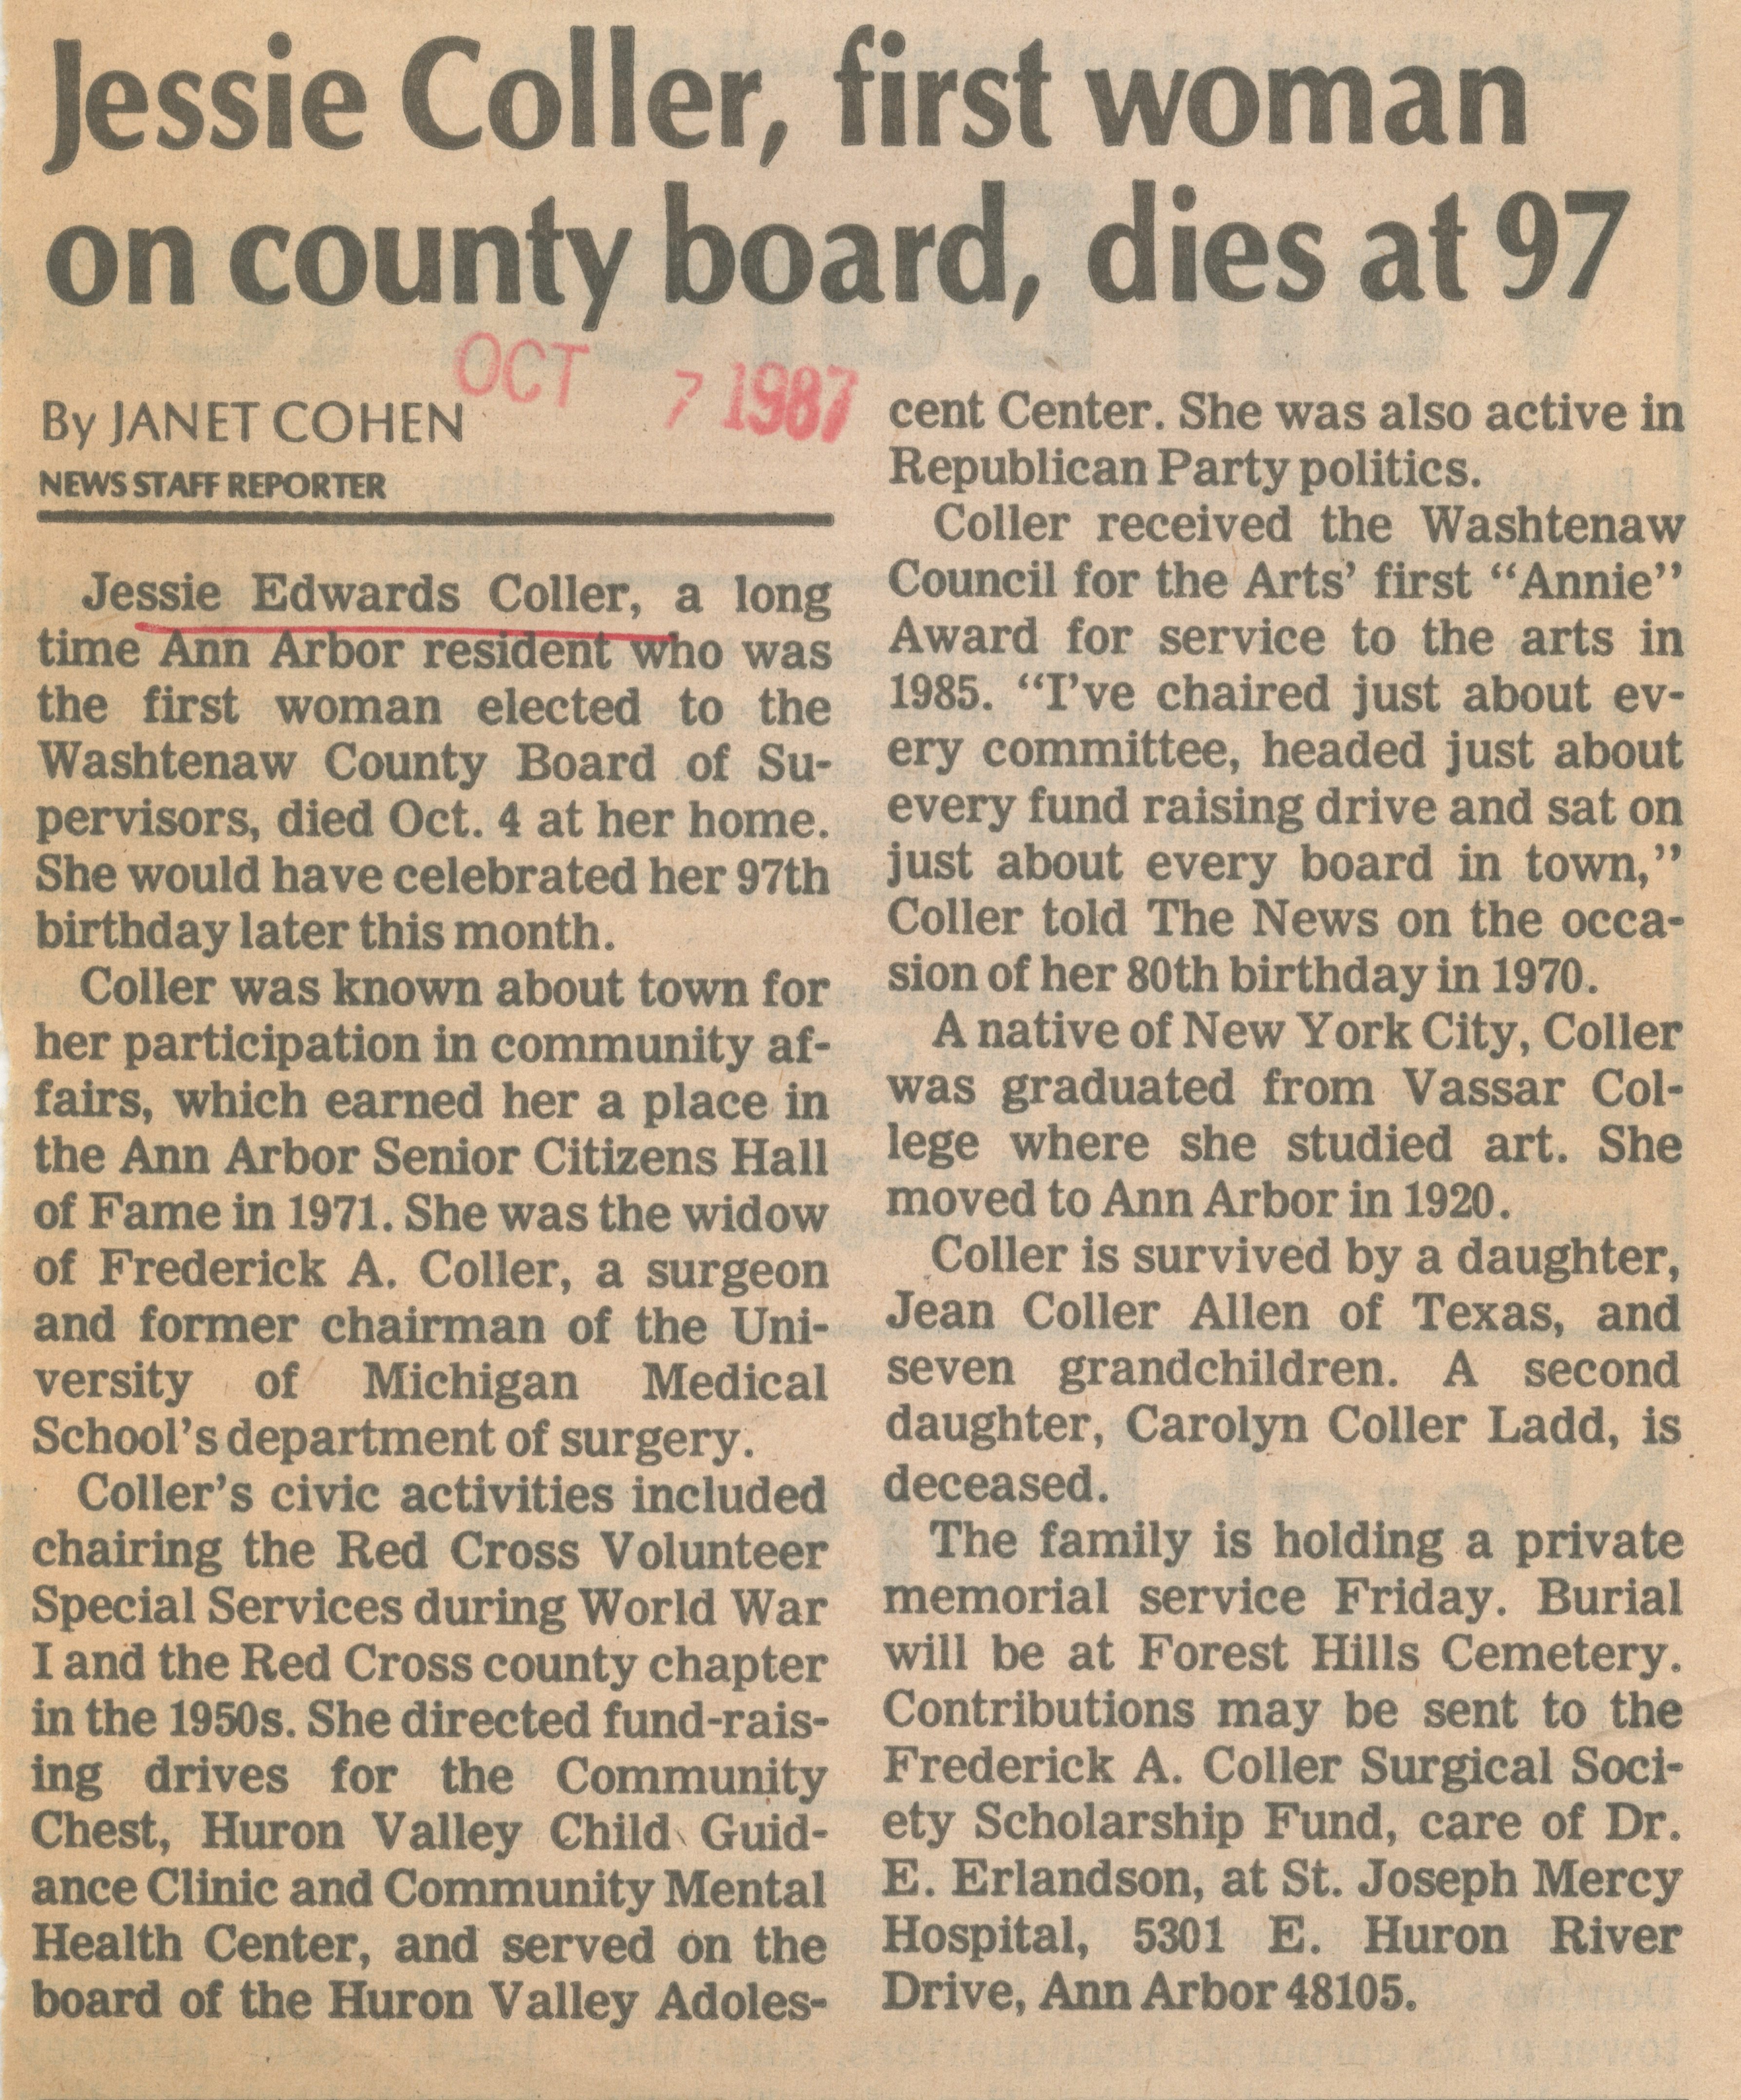 Jessie Coller, first woman on county board, dies at 97 image